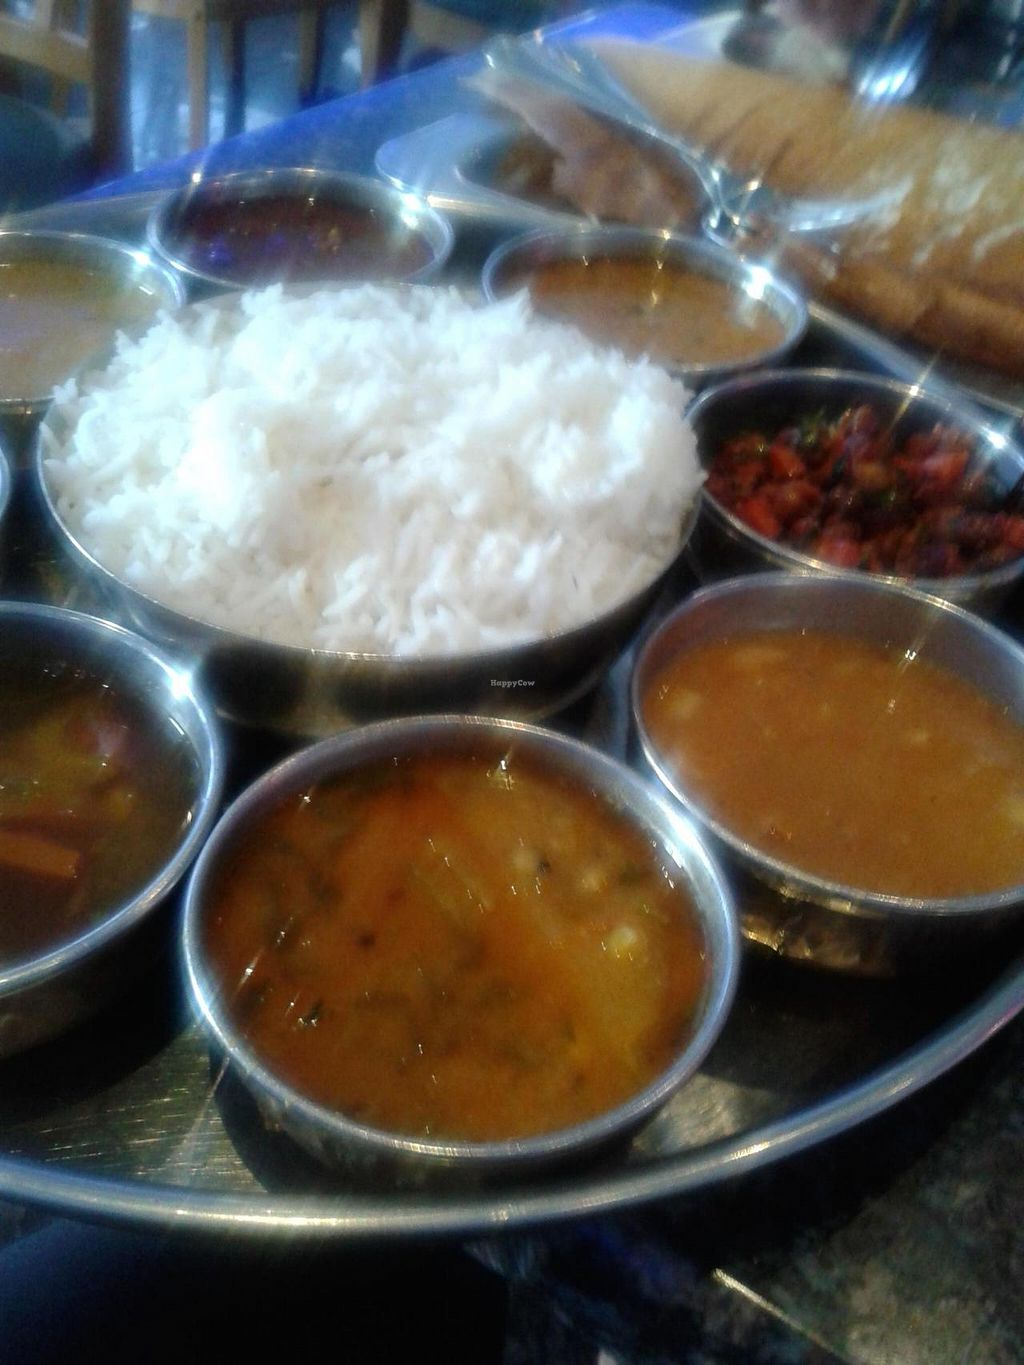 """Photo of Bhimas Veg  by <a href=""""/members/profile/chobesoy"""">chobesoy</a> <br/>Thali special <br/> June 8, 2015  - <a href='/contact/abuse/image/59226/105160'>Report</a>"""